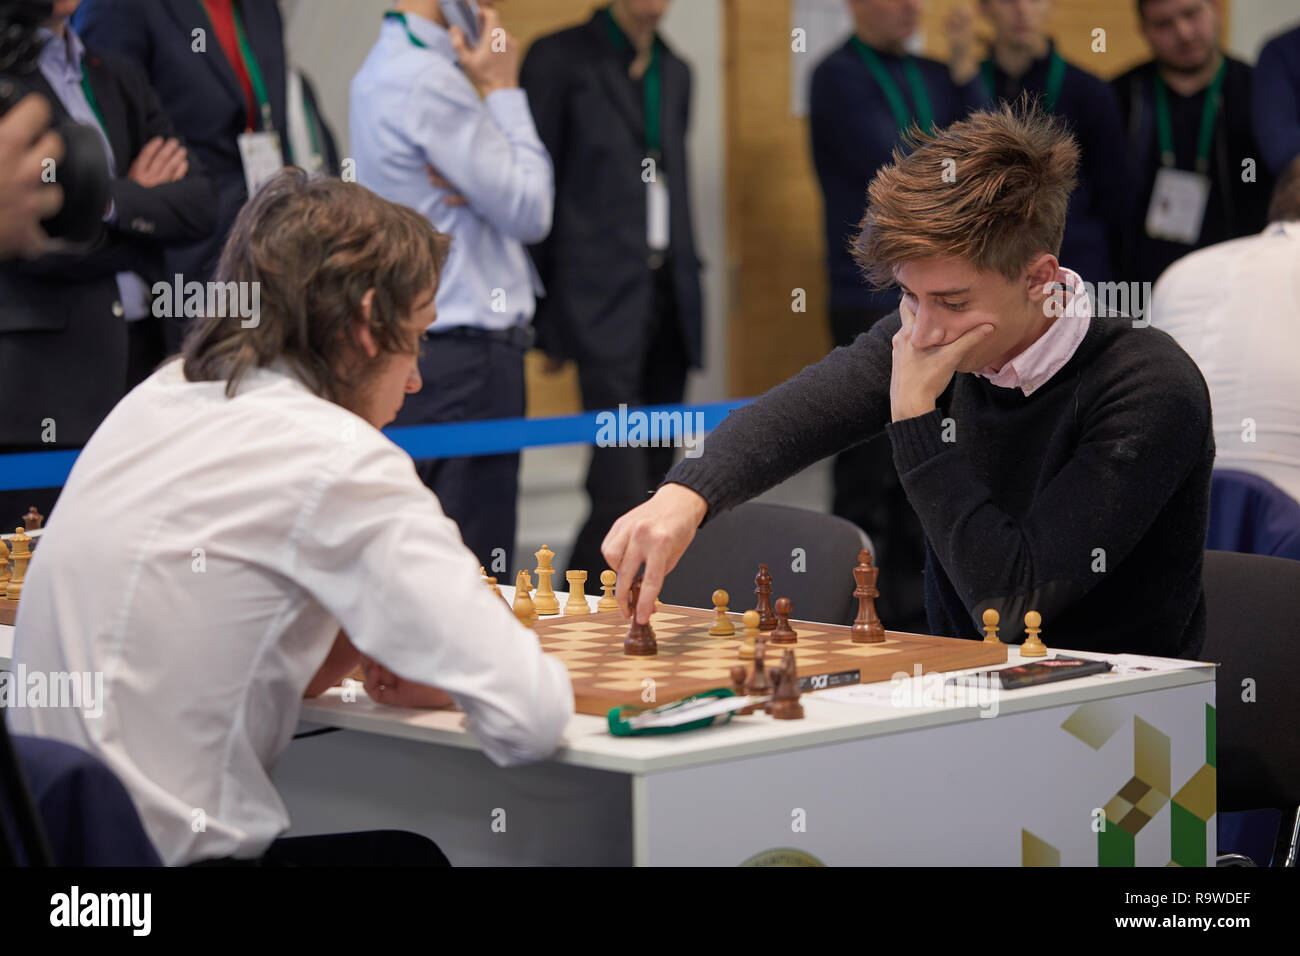 Grandmaster Daniil Dubov, Russia (right) competes in World Rapid Chess Championship 2018. Eventually he become the World Rapid Chess Champion - Stock Image